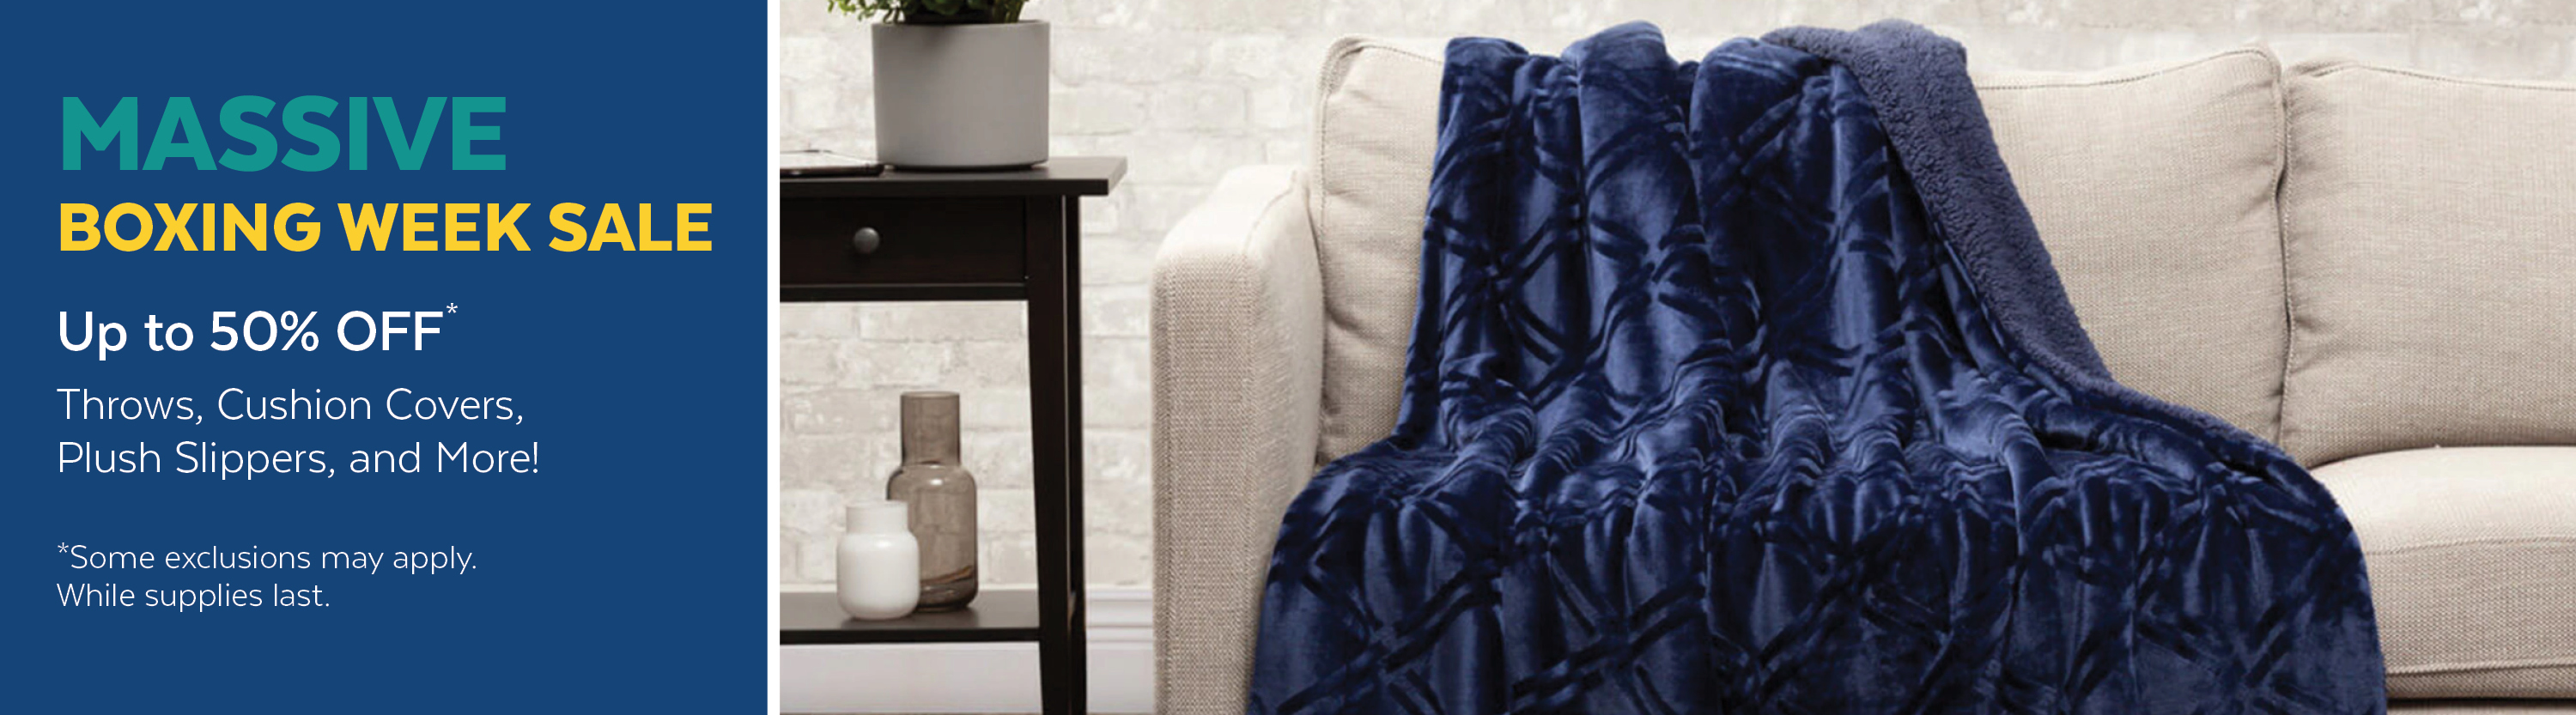 Up to 30% Off and Buy One Get One 50% Off Throws, Cushion Covers, Plush Slippers, and More